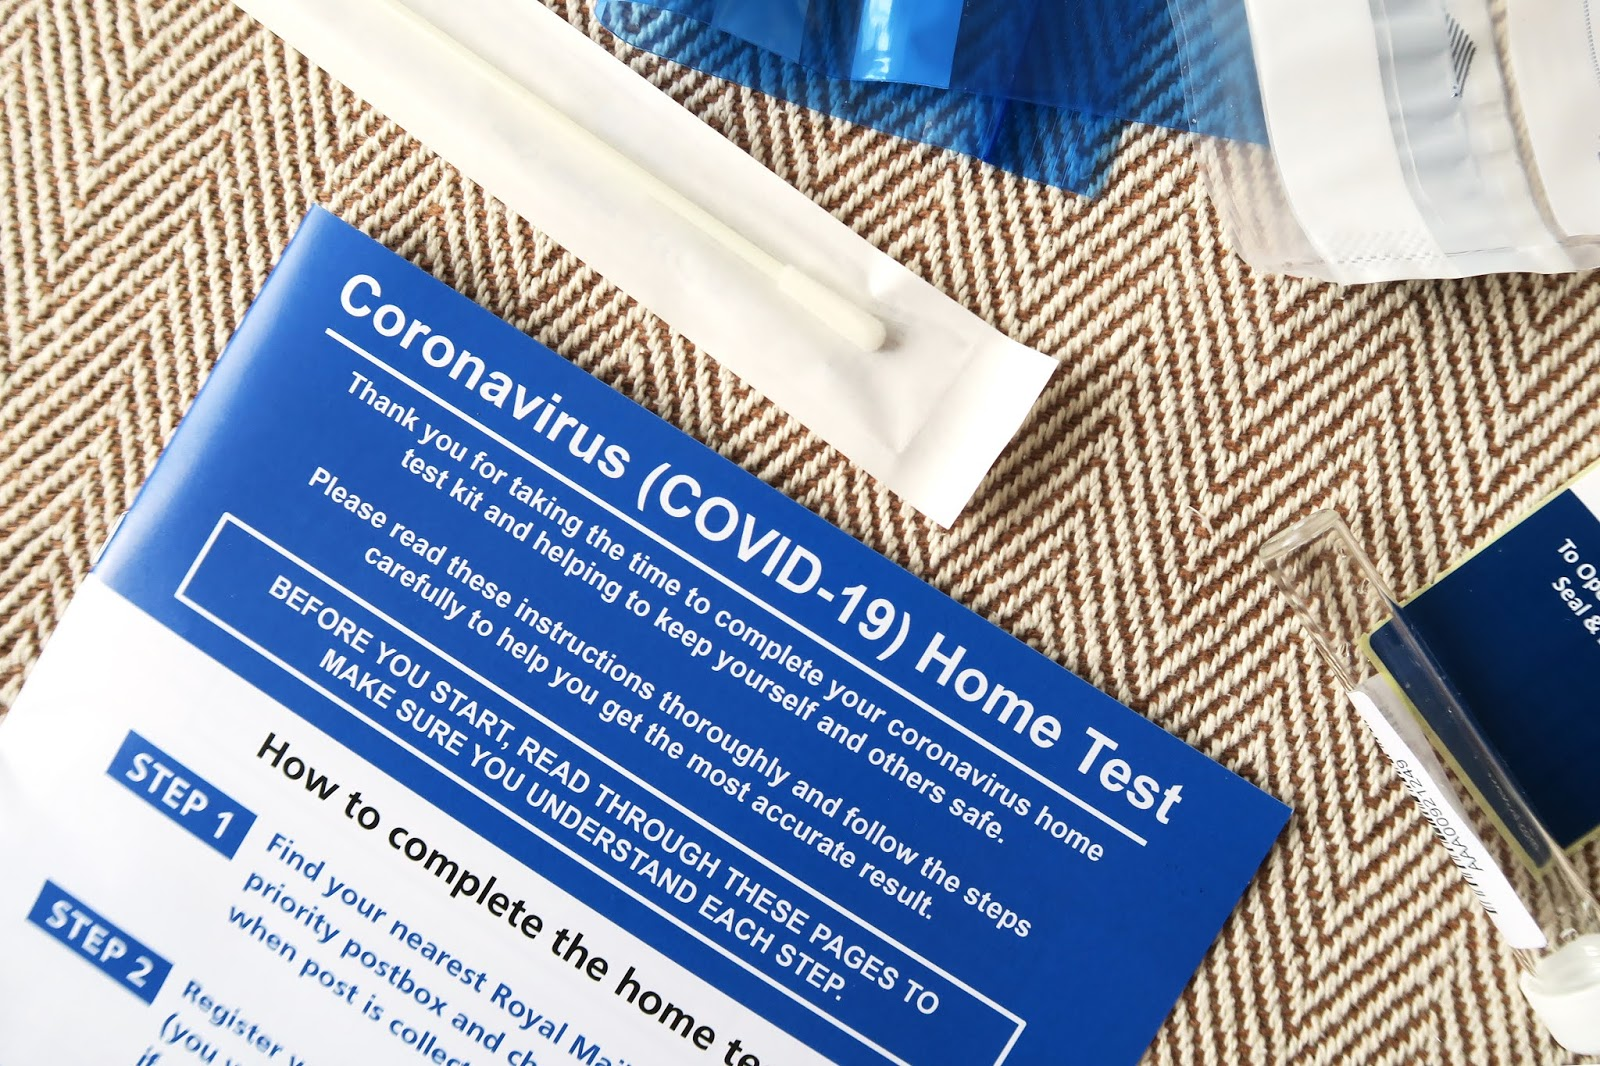 The contents of a UK coronavirus testing kit - including instructions, a swab, a small vial, and easy seal plastic bags